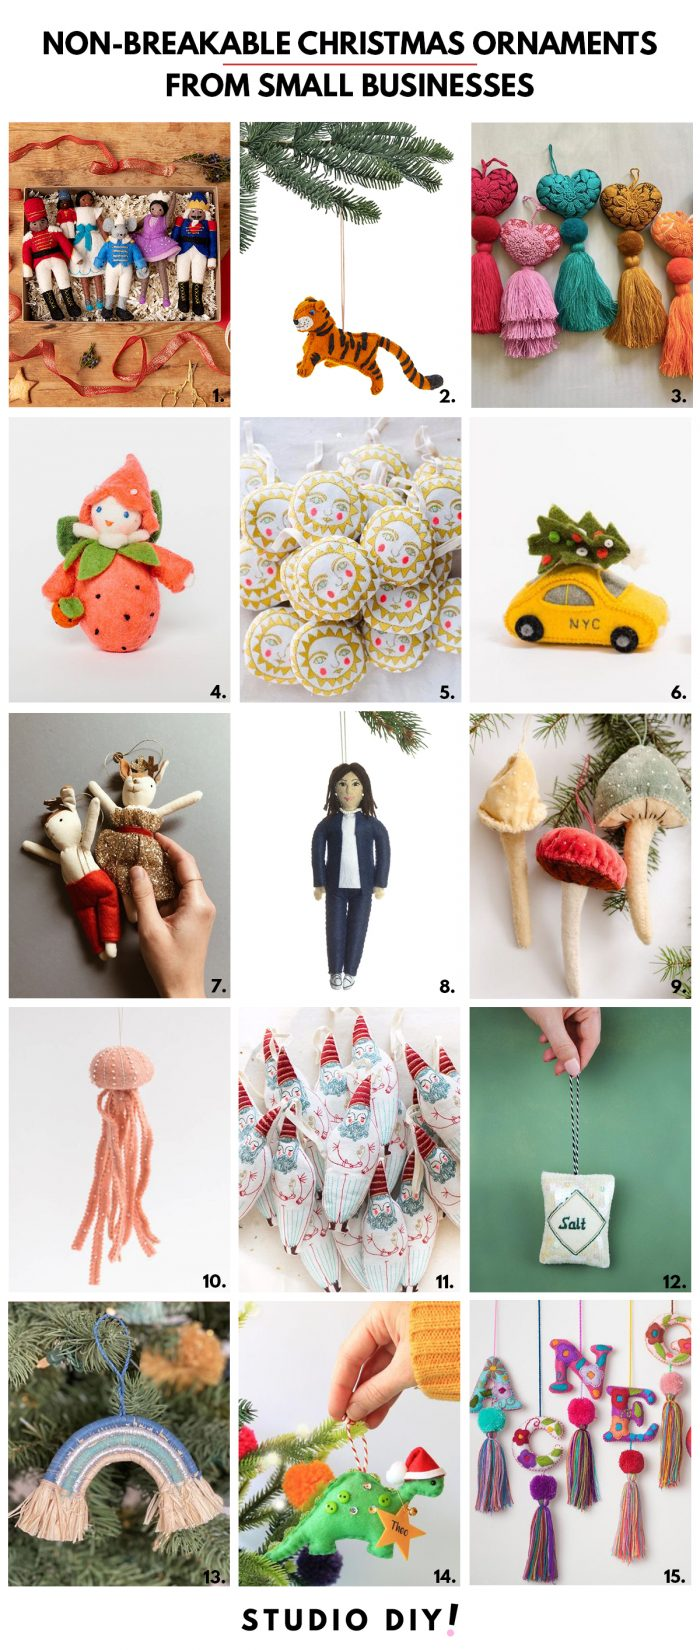 Non-Breakable Christmas Ornaments for Kids from Small Businesses